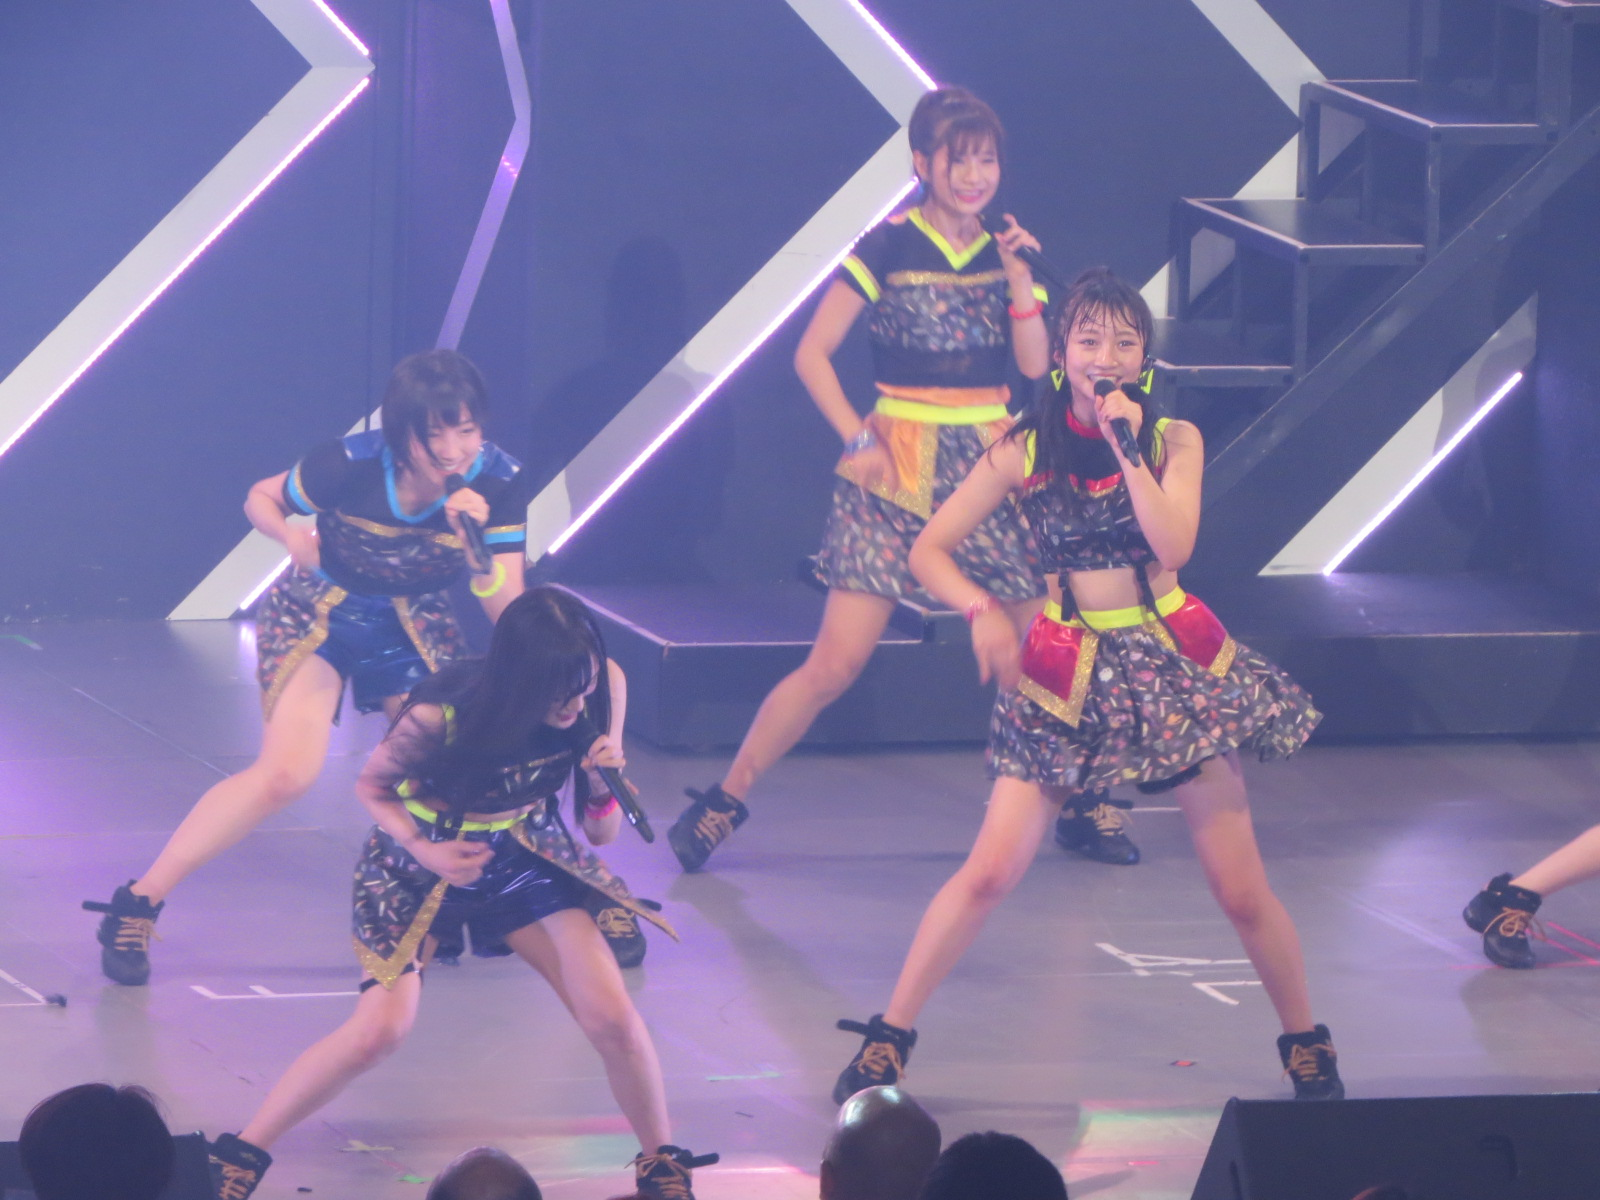 NMB48 LIVE TOUR 2018 in Summer・石川公演の画像-099